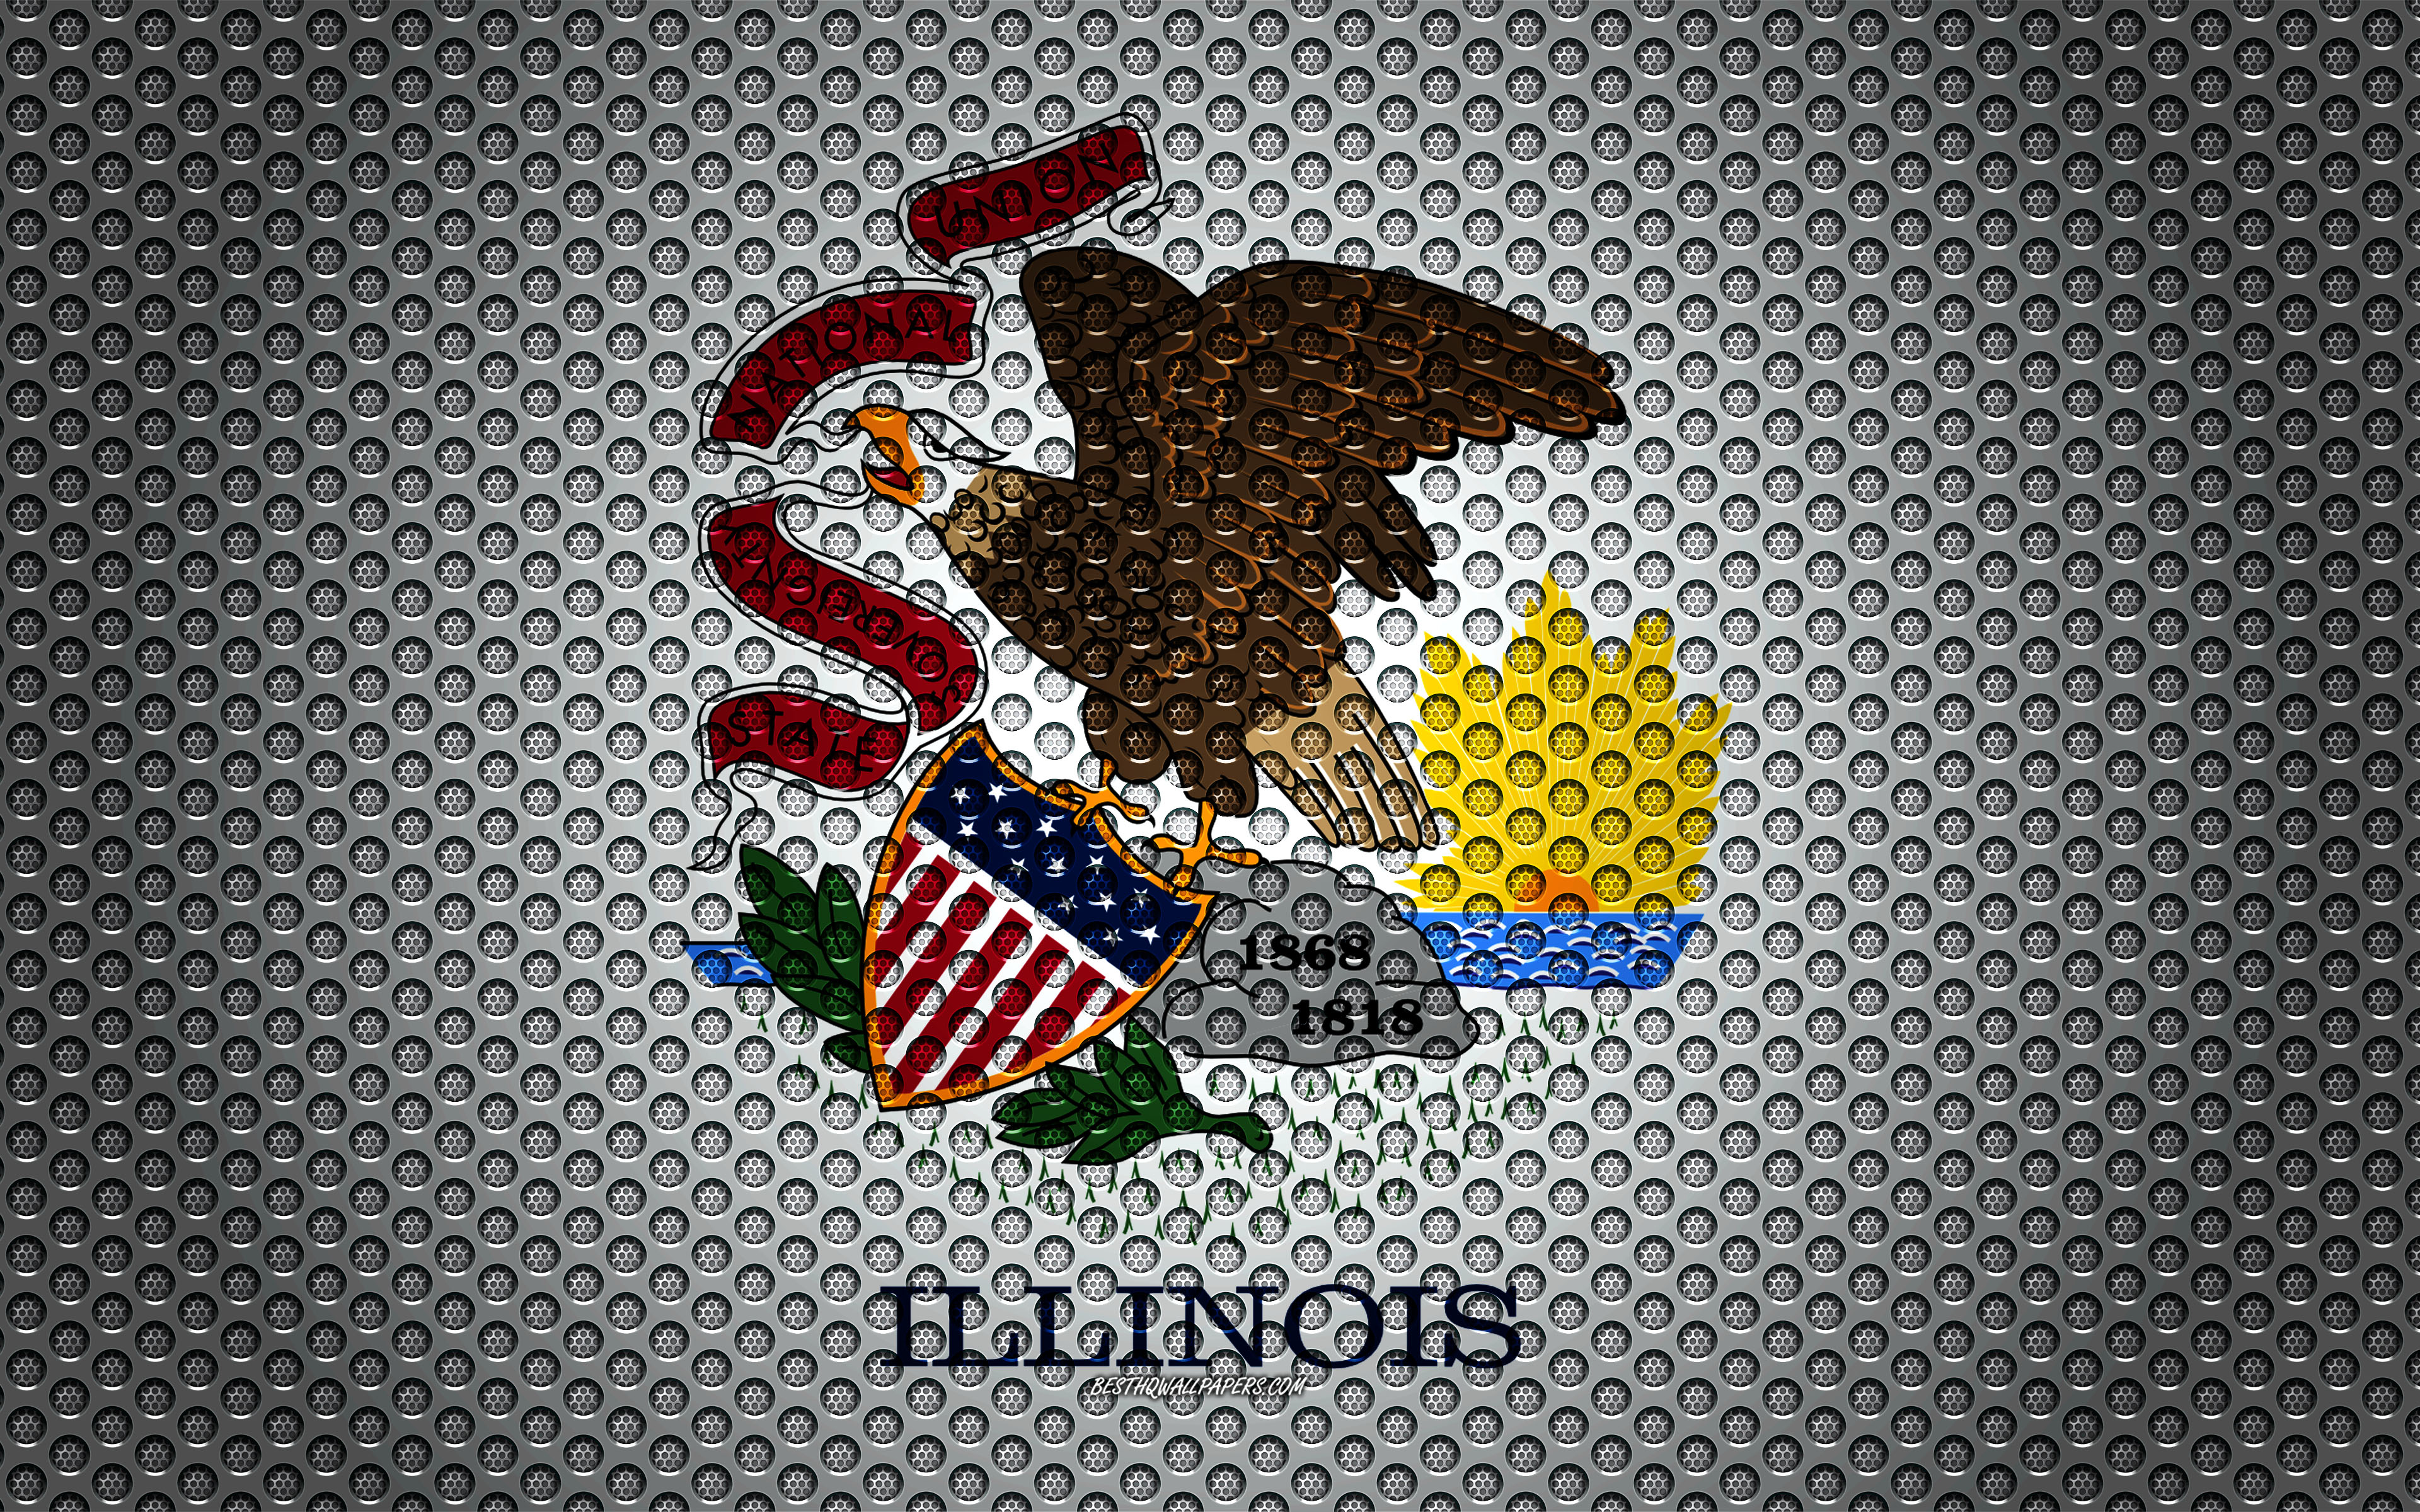 Download wallpapers Flag of Illinois 4k American state creative 3840x2400